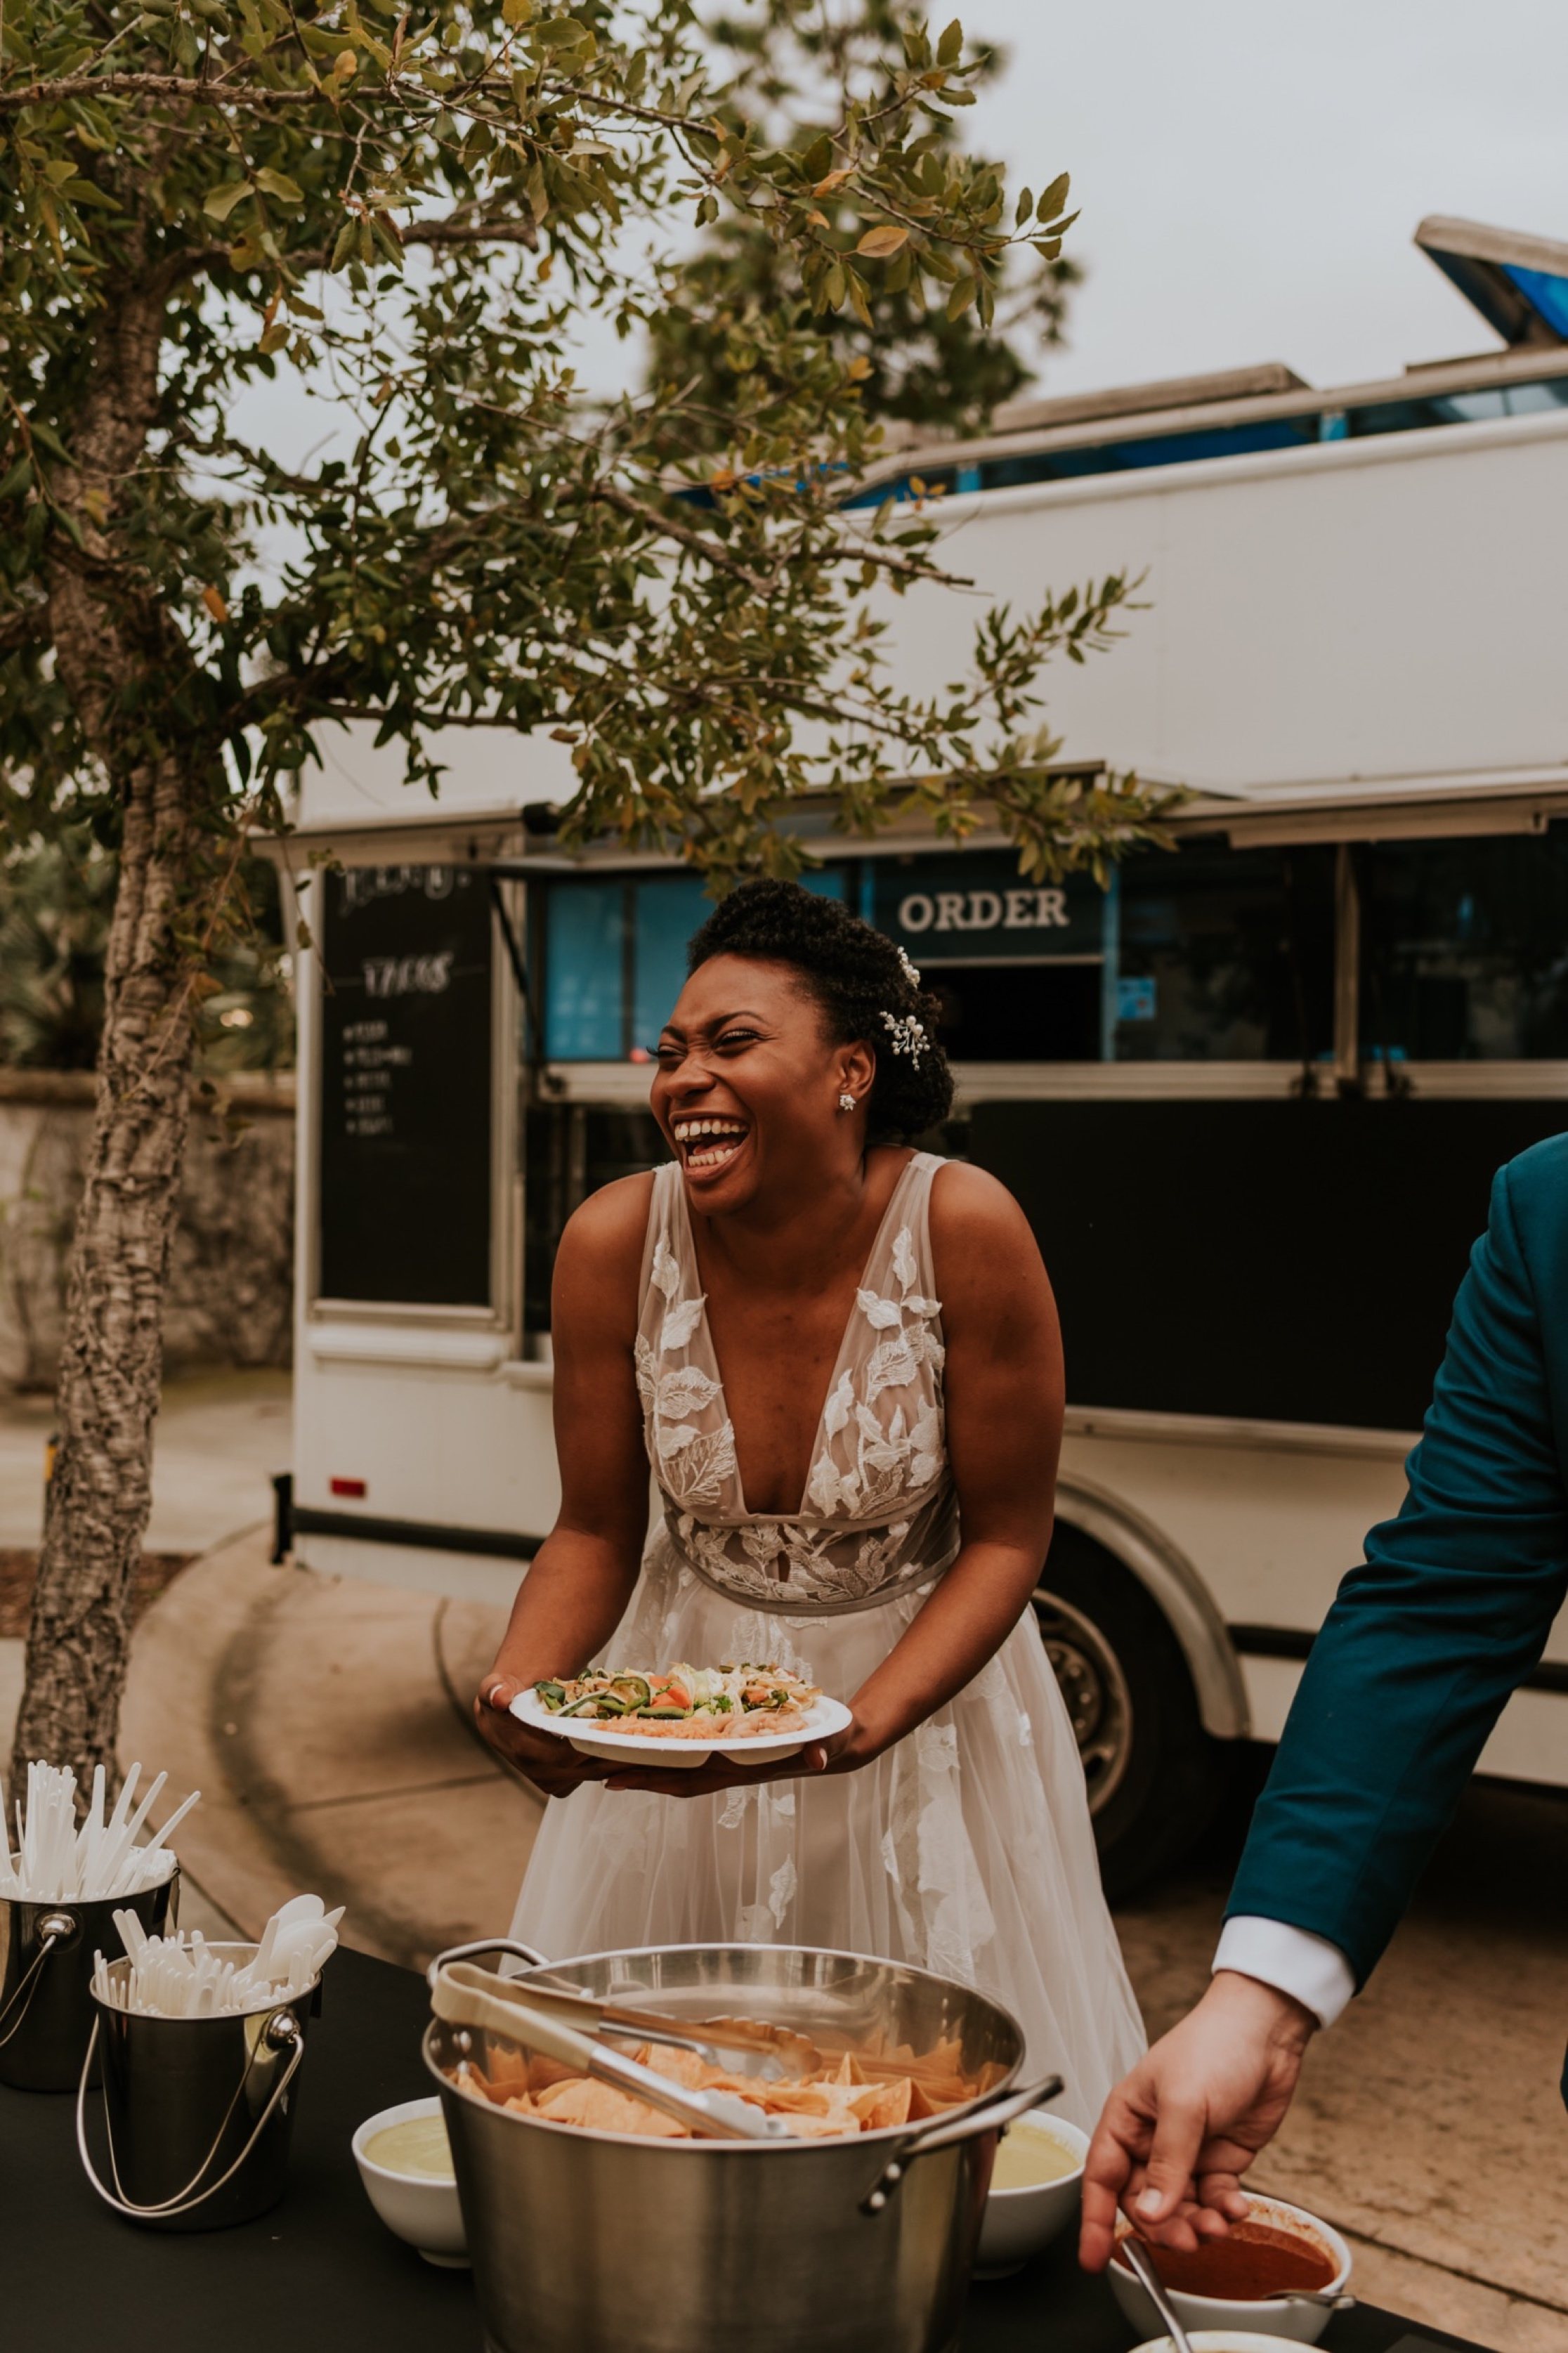 Santa Barbara Wedding at the Carousel House | Food Truck Reception | Carrie Rogers Photography